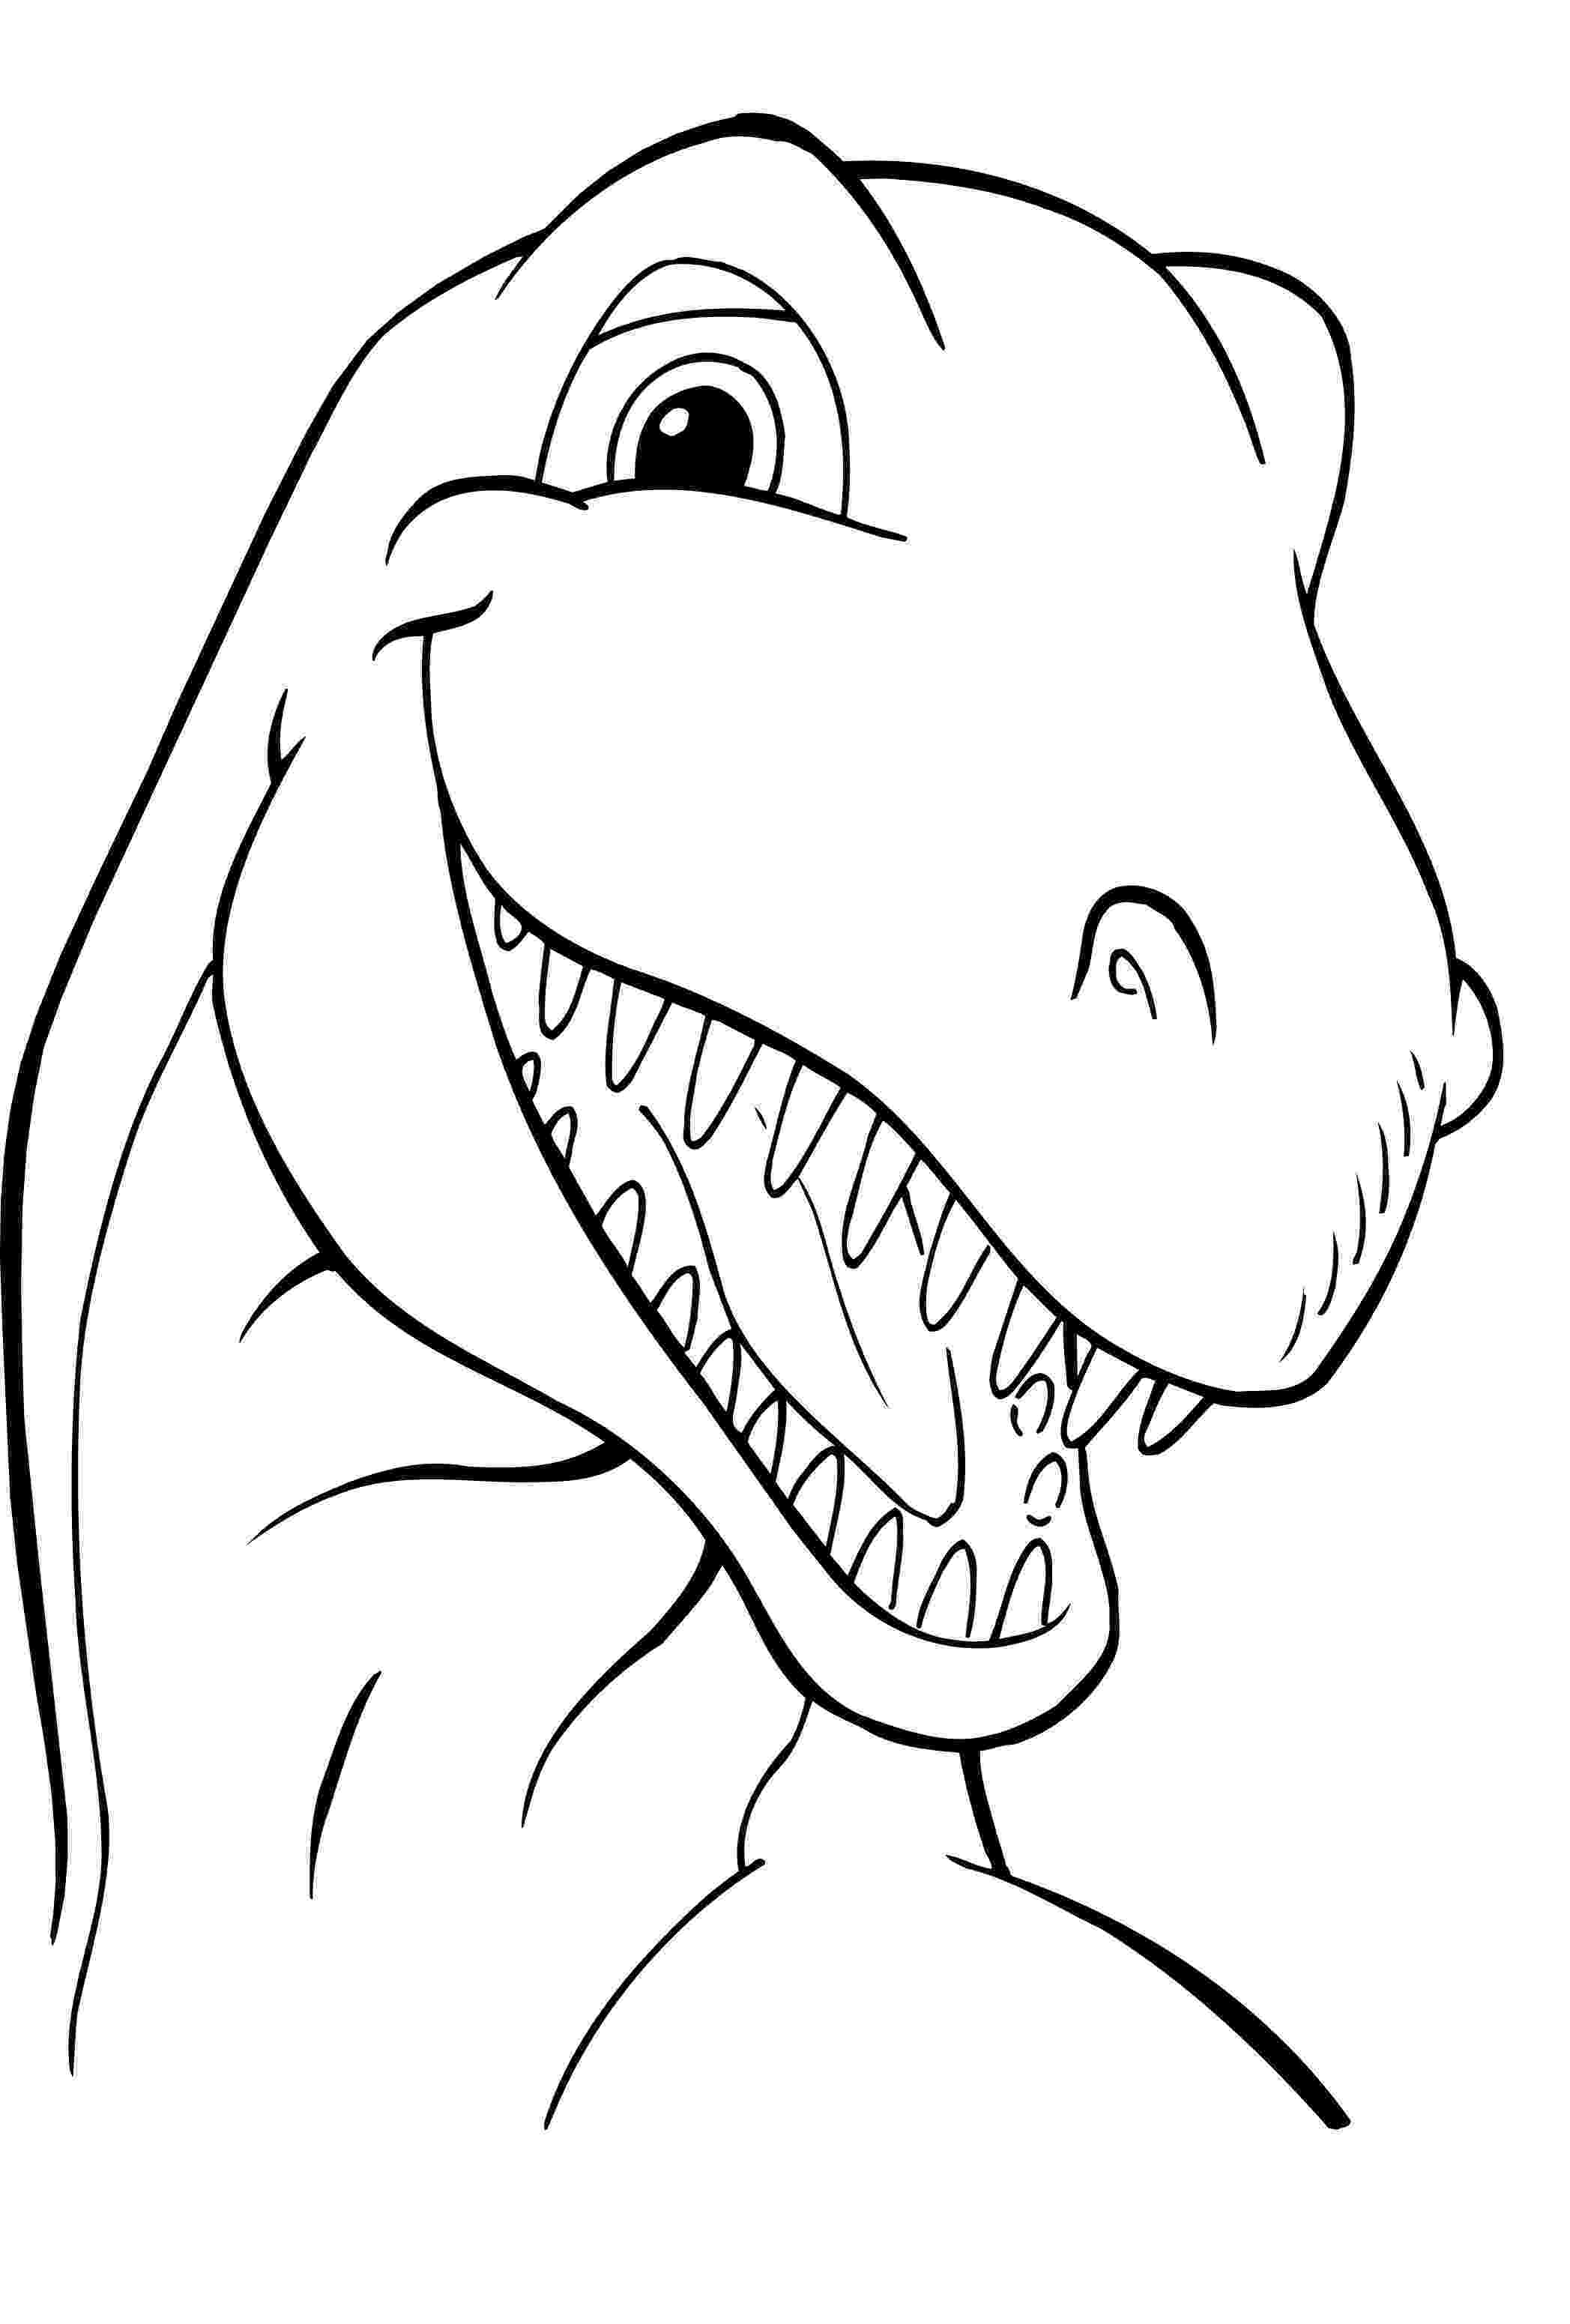 dinosaurs for coloring free printable dinosaur coloring pages for kids coloring dinosaurs for 1 2